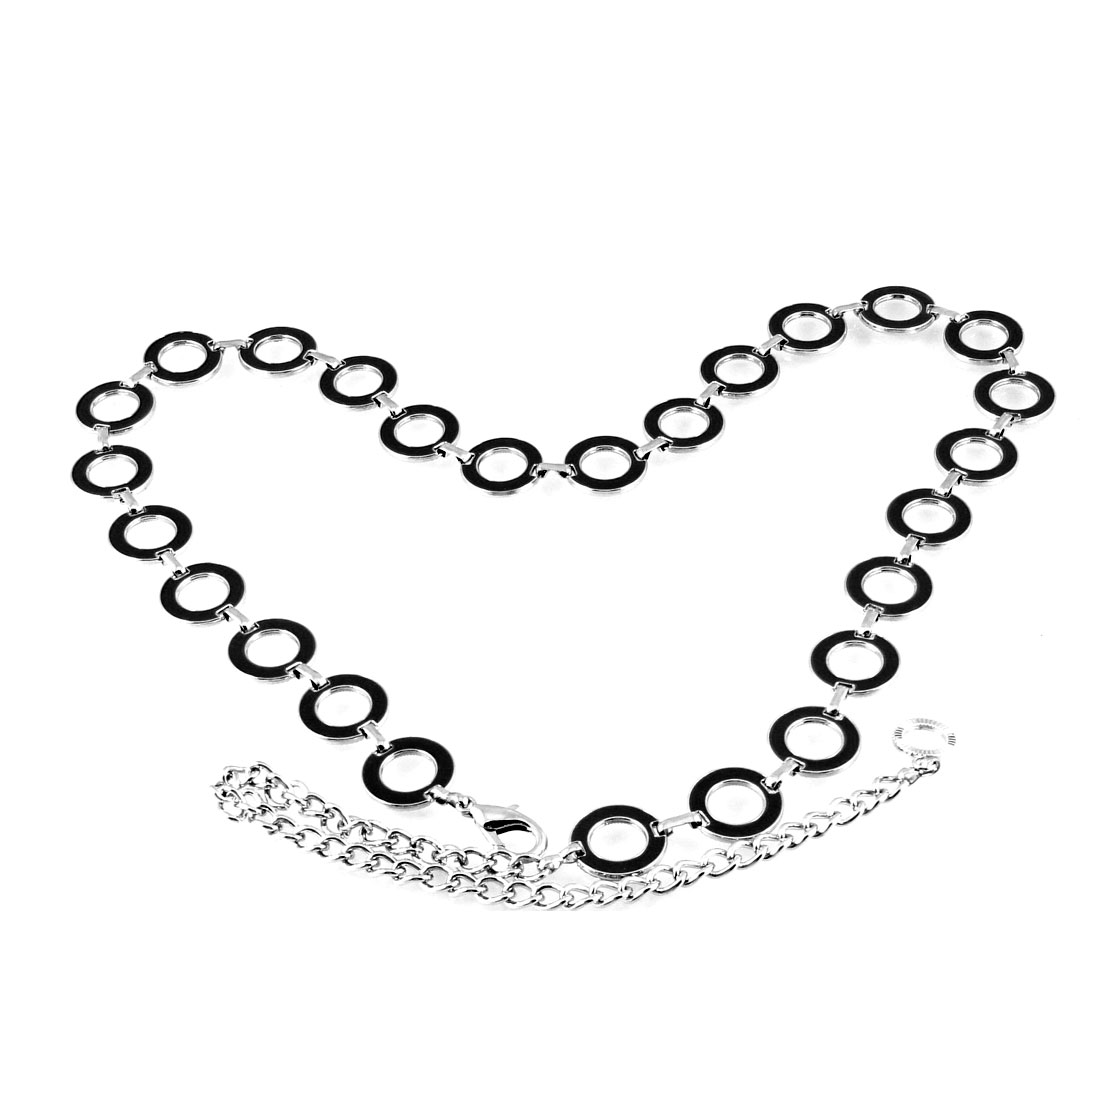 Black Linked Hollow Round Design Silver Tone Waist Chain Belt for Lady